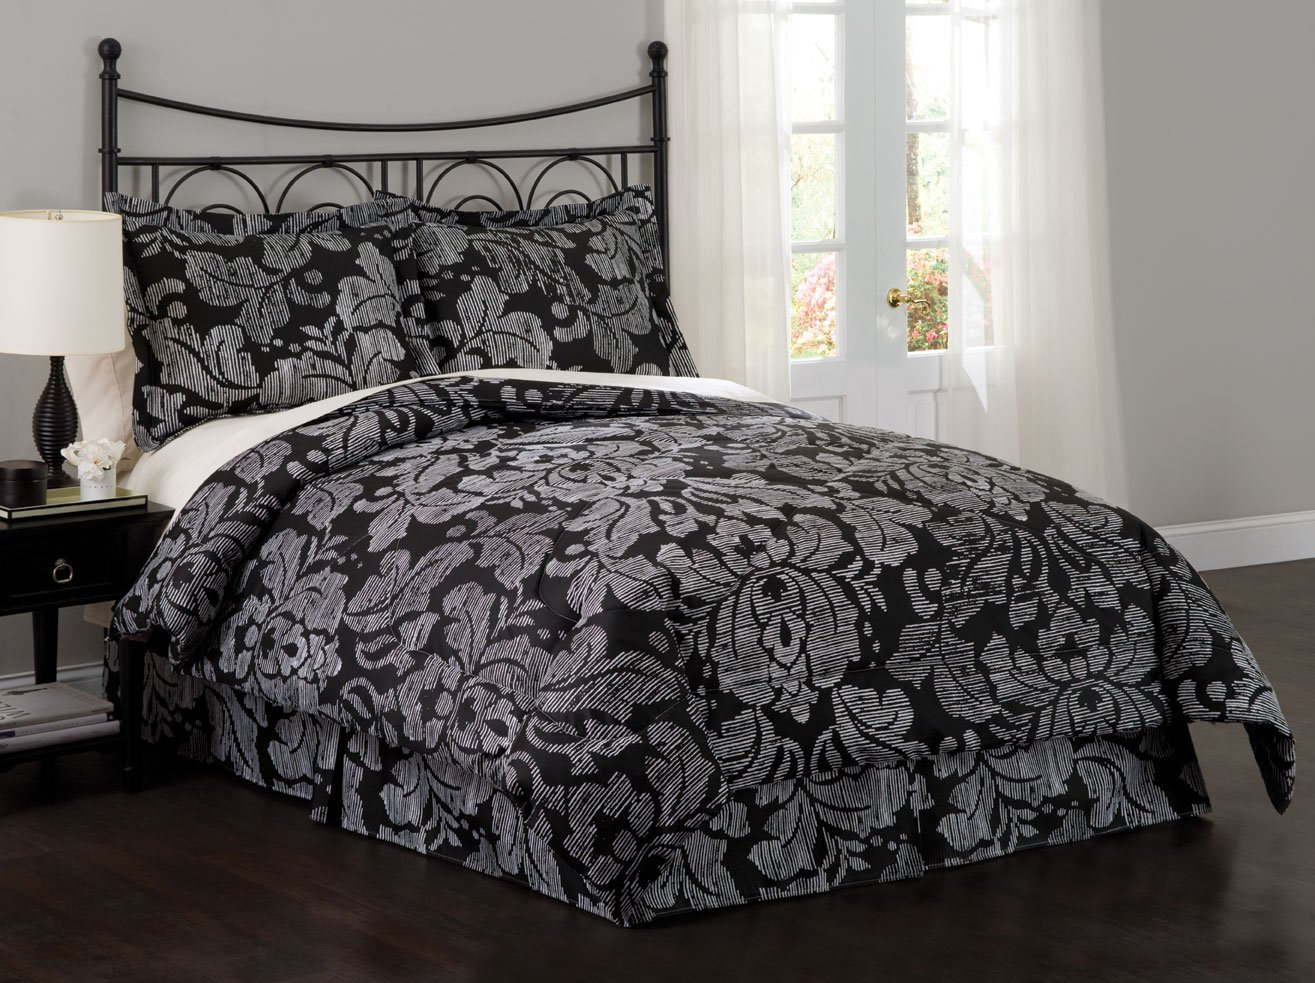 Black And Silver Bed Black And Silver Bedding